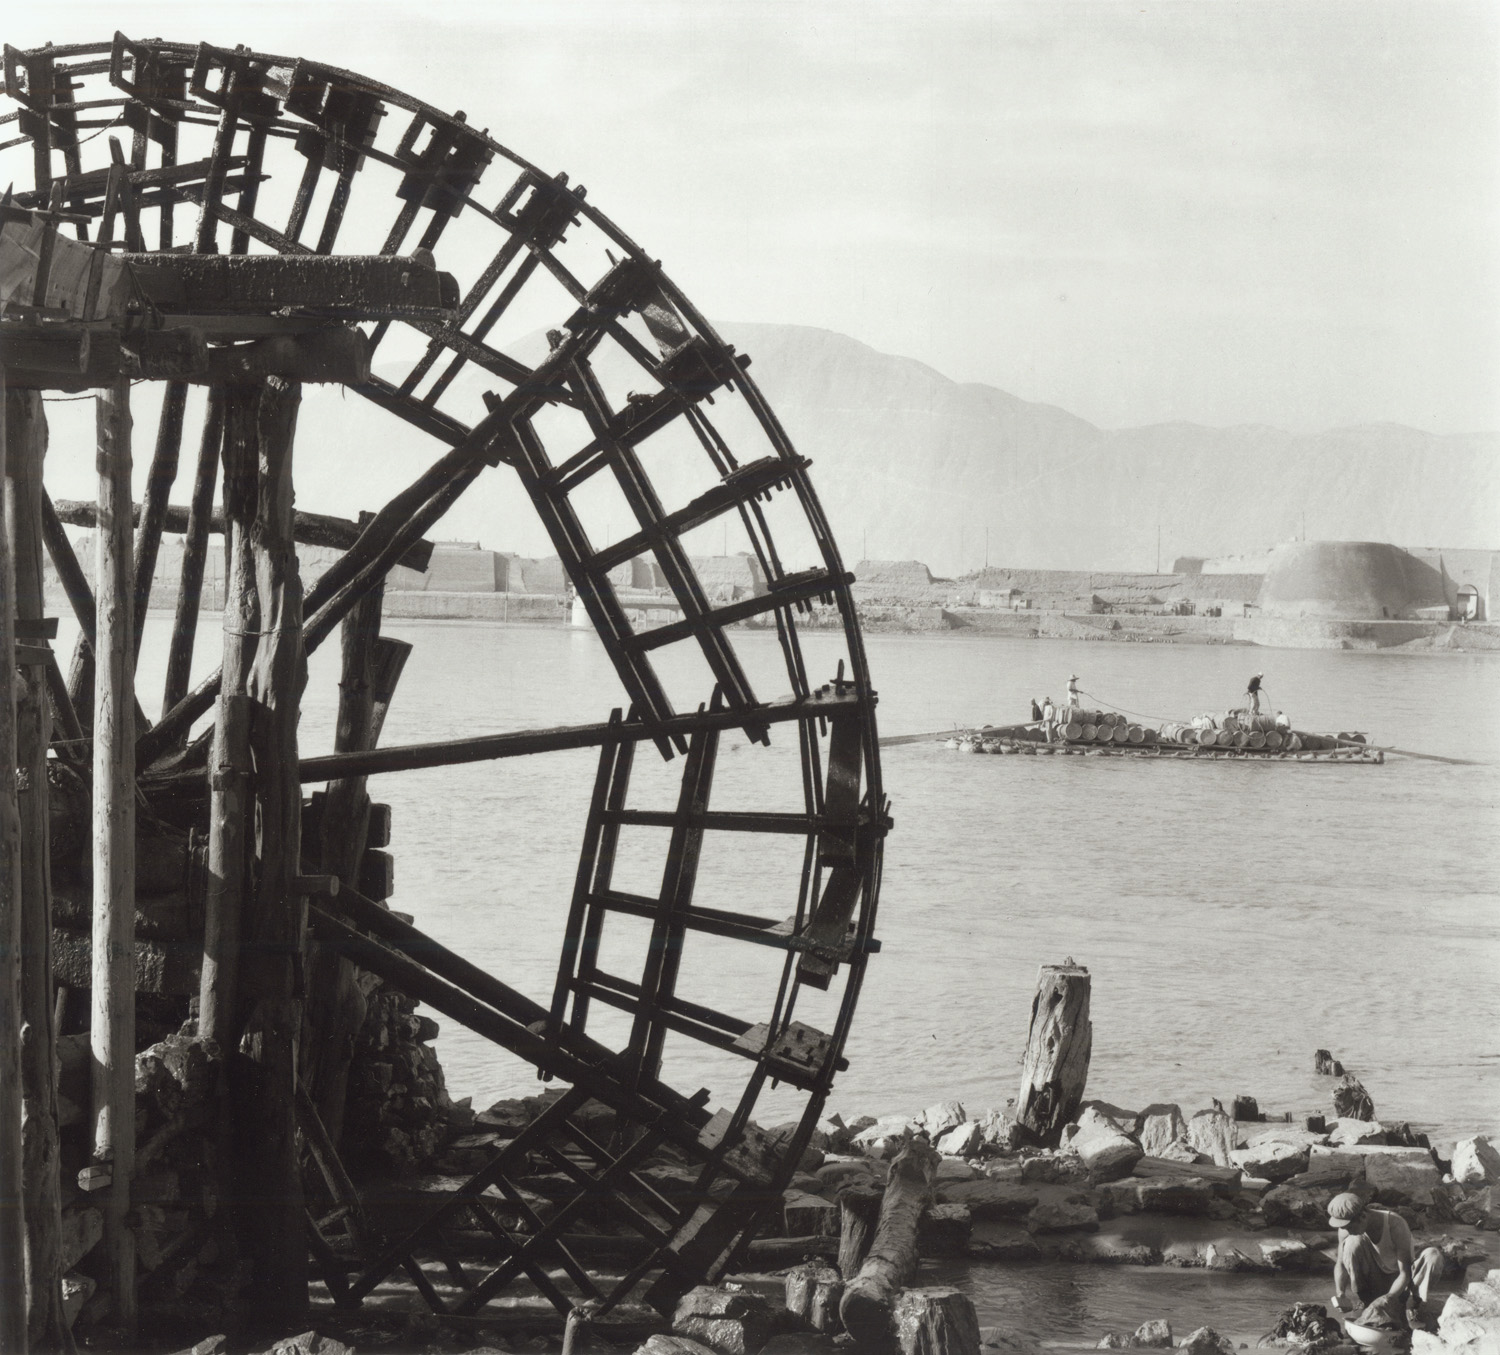 A waterwheel on the Yellow River supplies local irrigation needs at Lanchow. China, July 1956. (RDH R24-05)